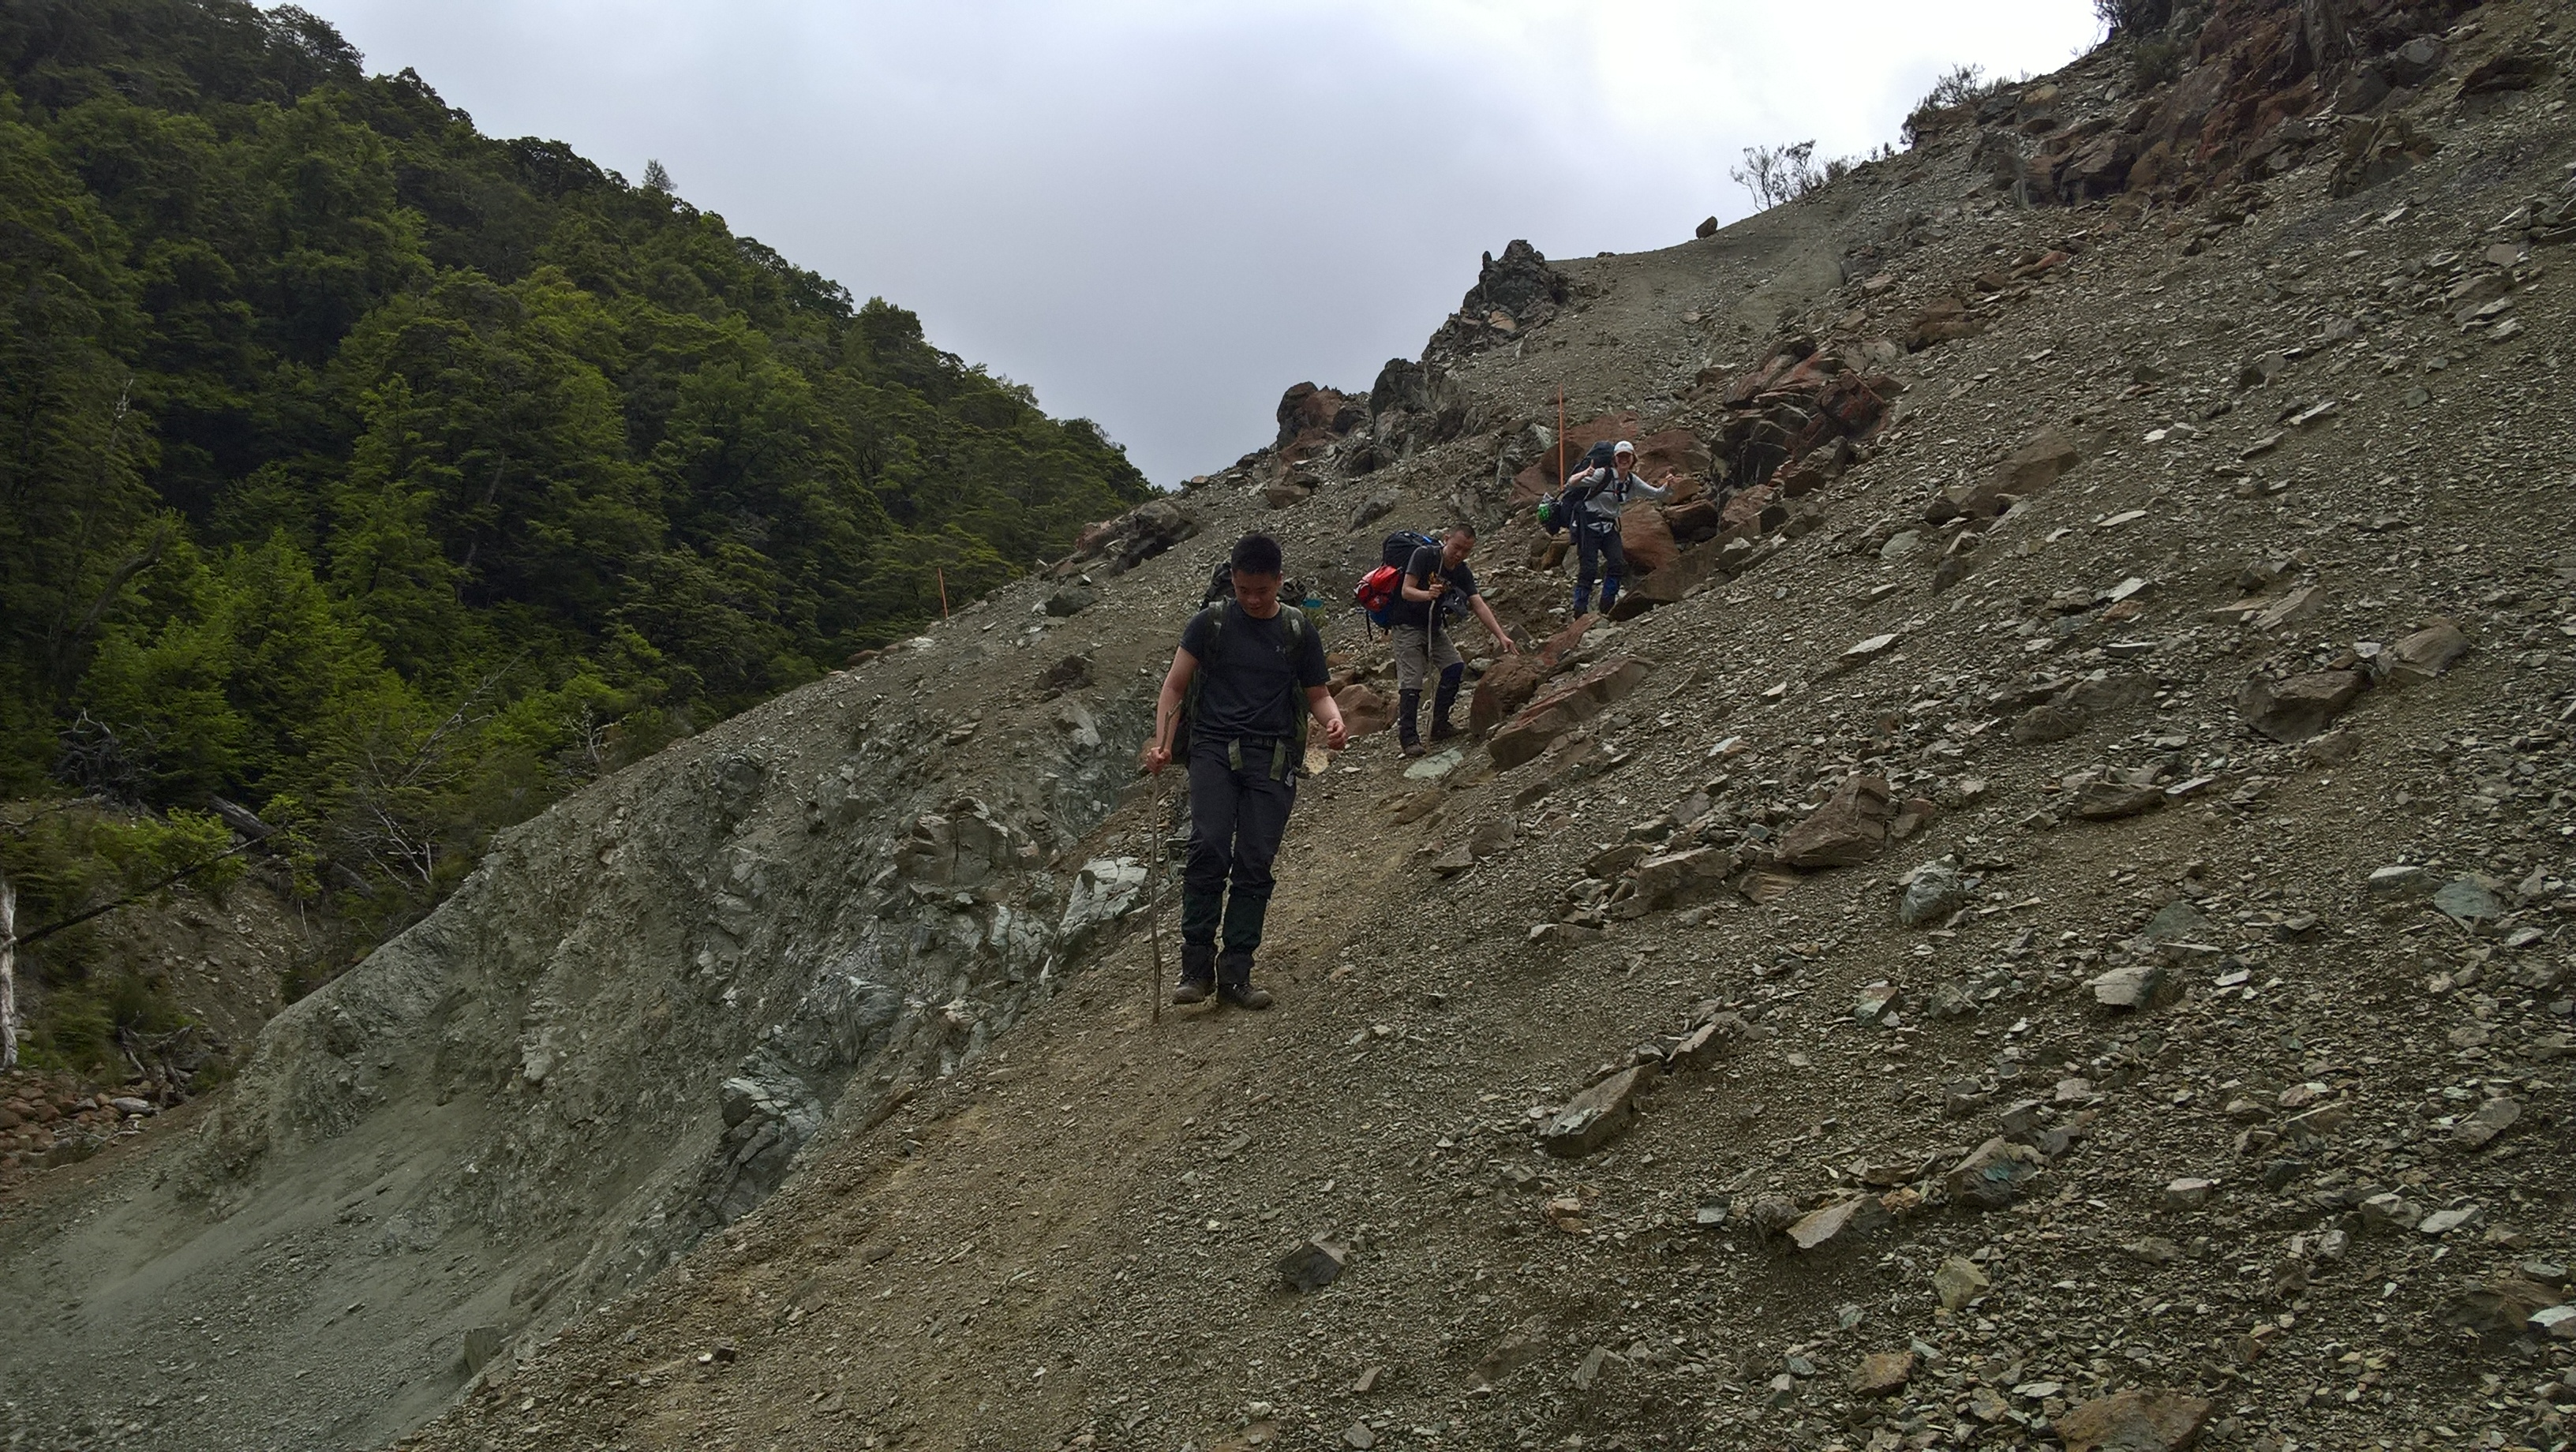 Three people descending a rocky path in the hills